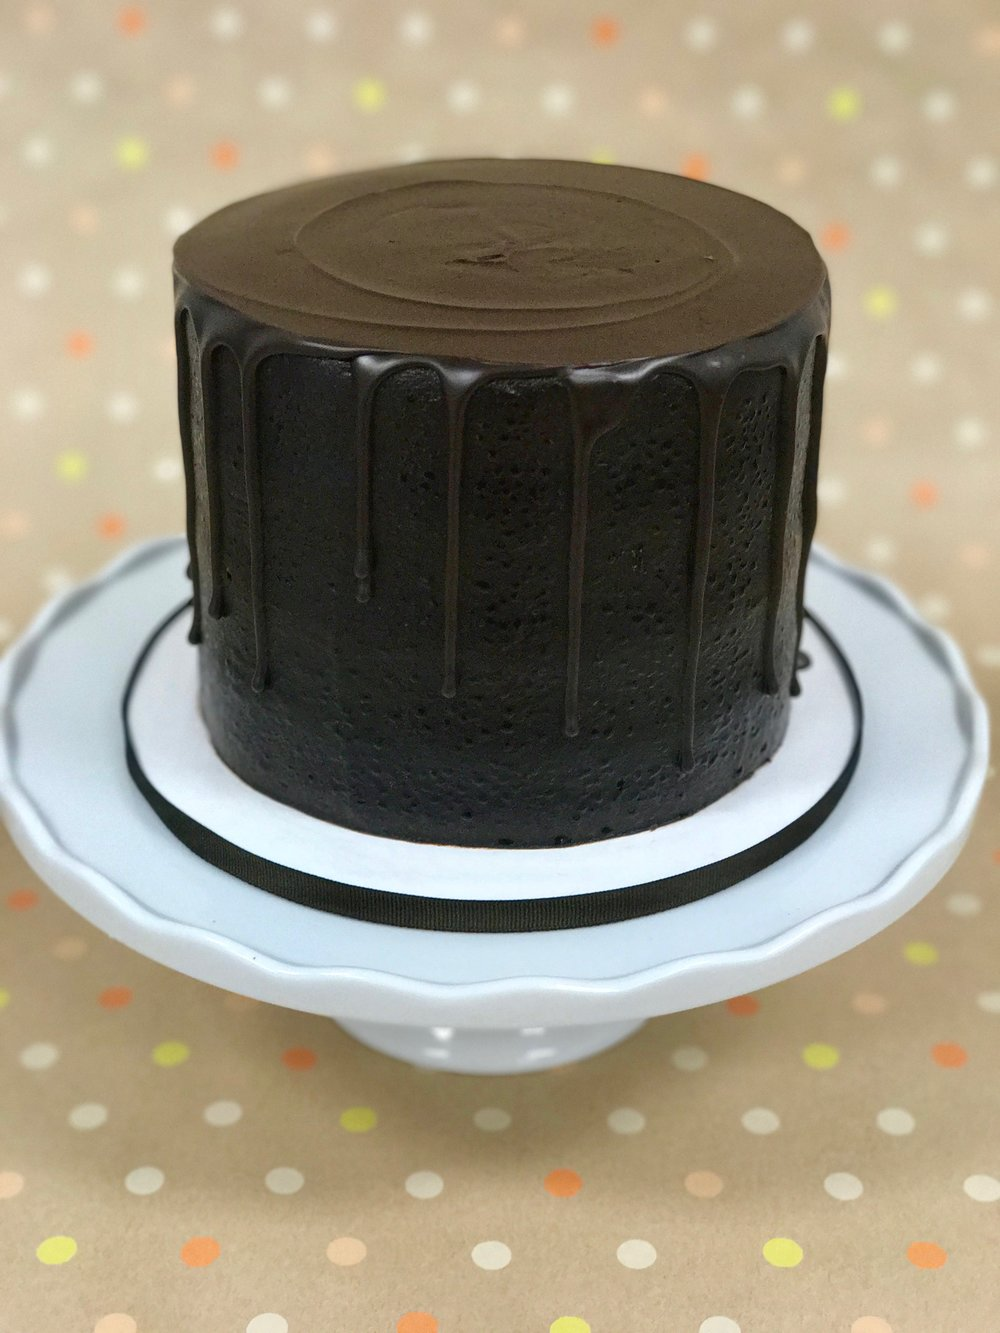 Triple Chocolate - Cake: ChocolateFilling: Chocolate FudgeFrosting: Chocolate Fudge and dark chocolate ganache